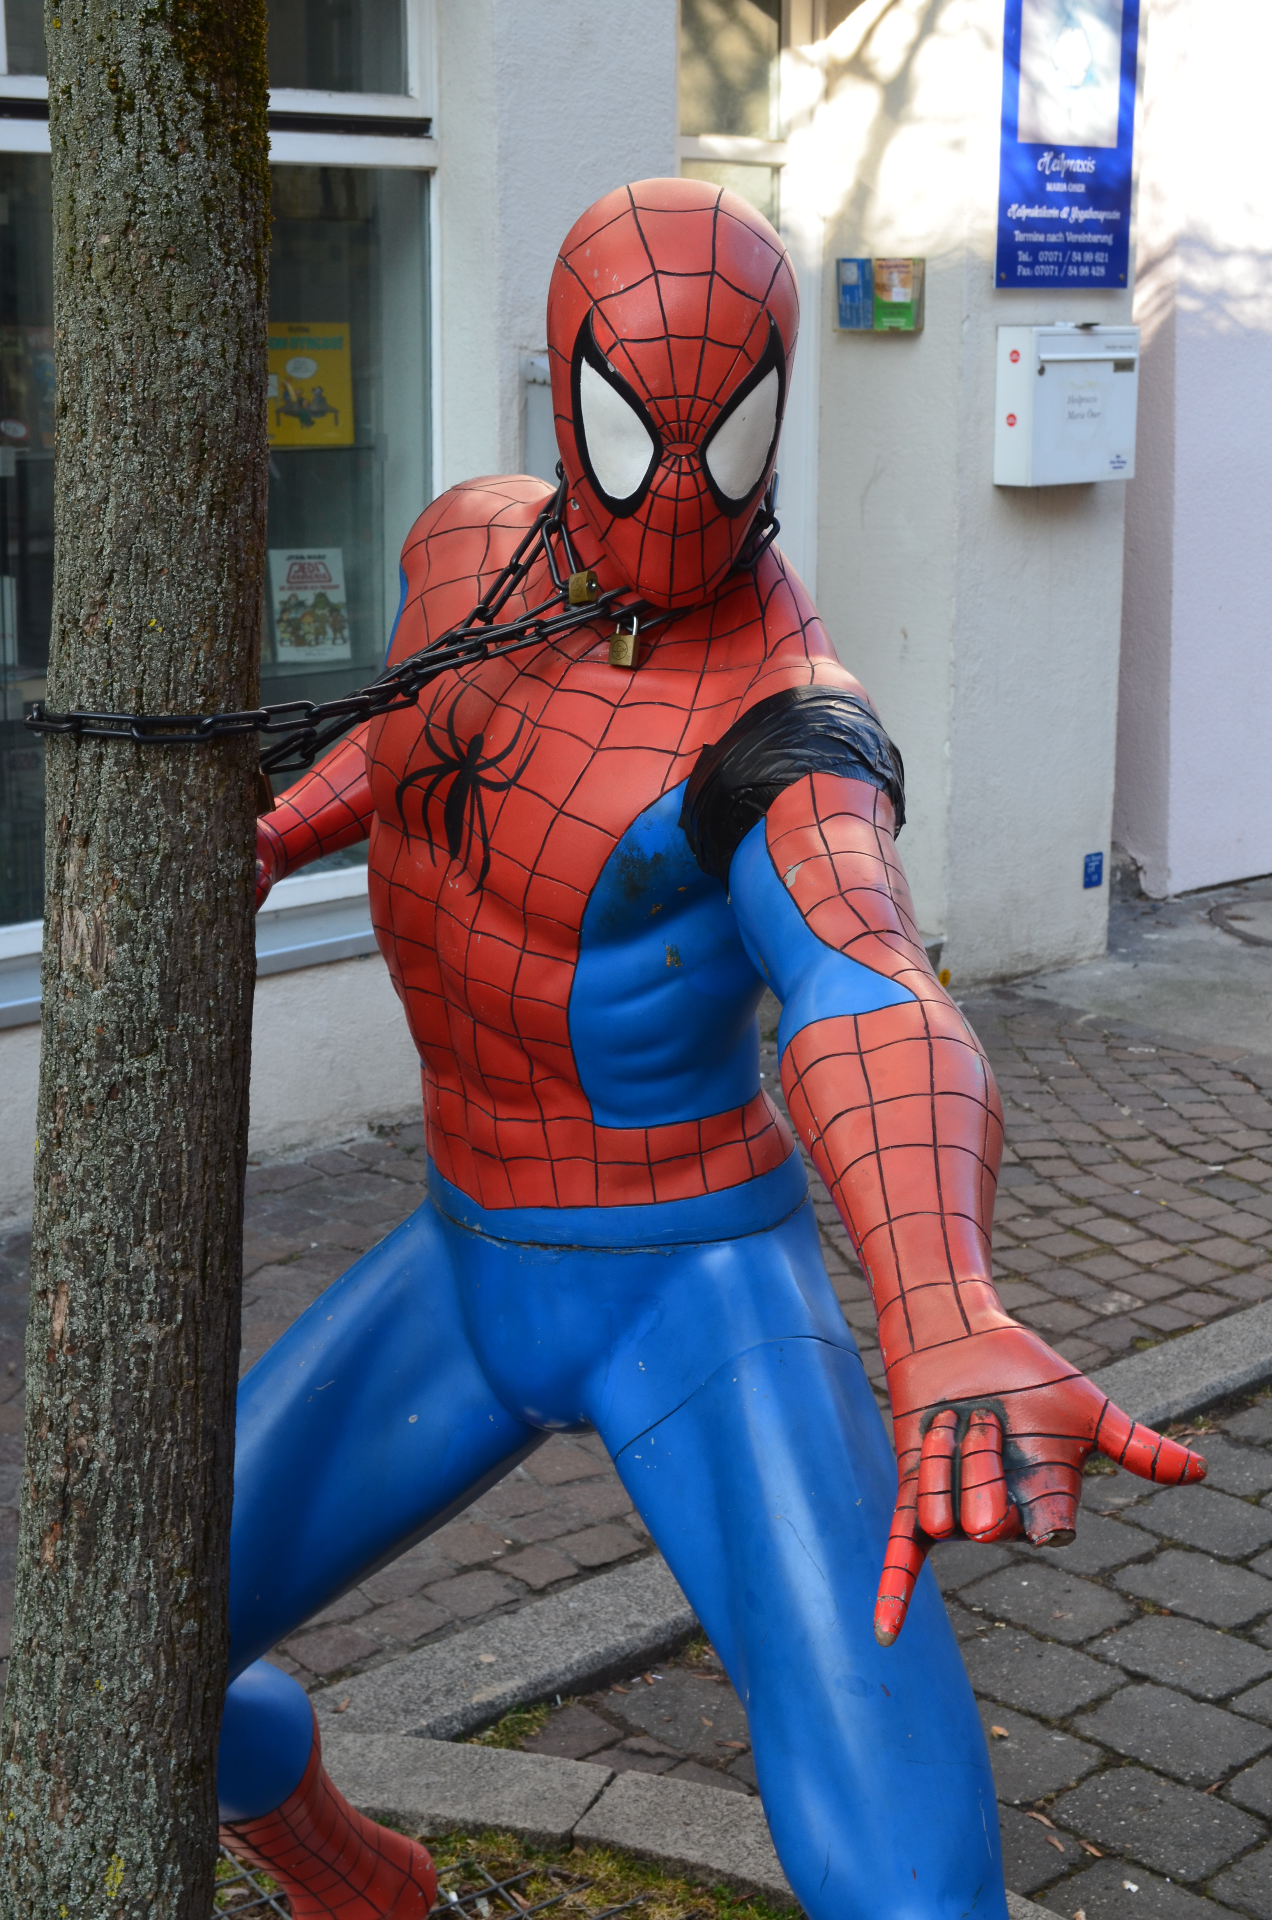 Spiderman in Tübingen